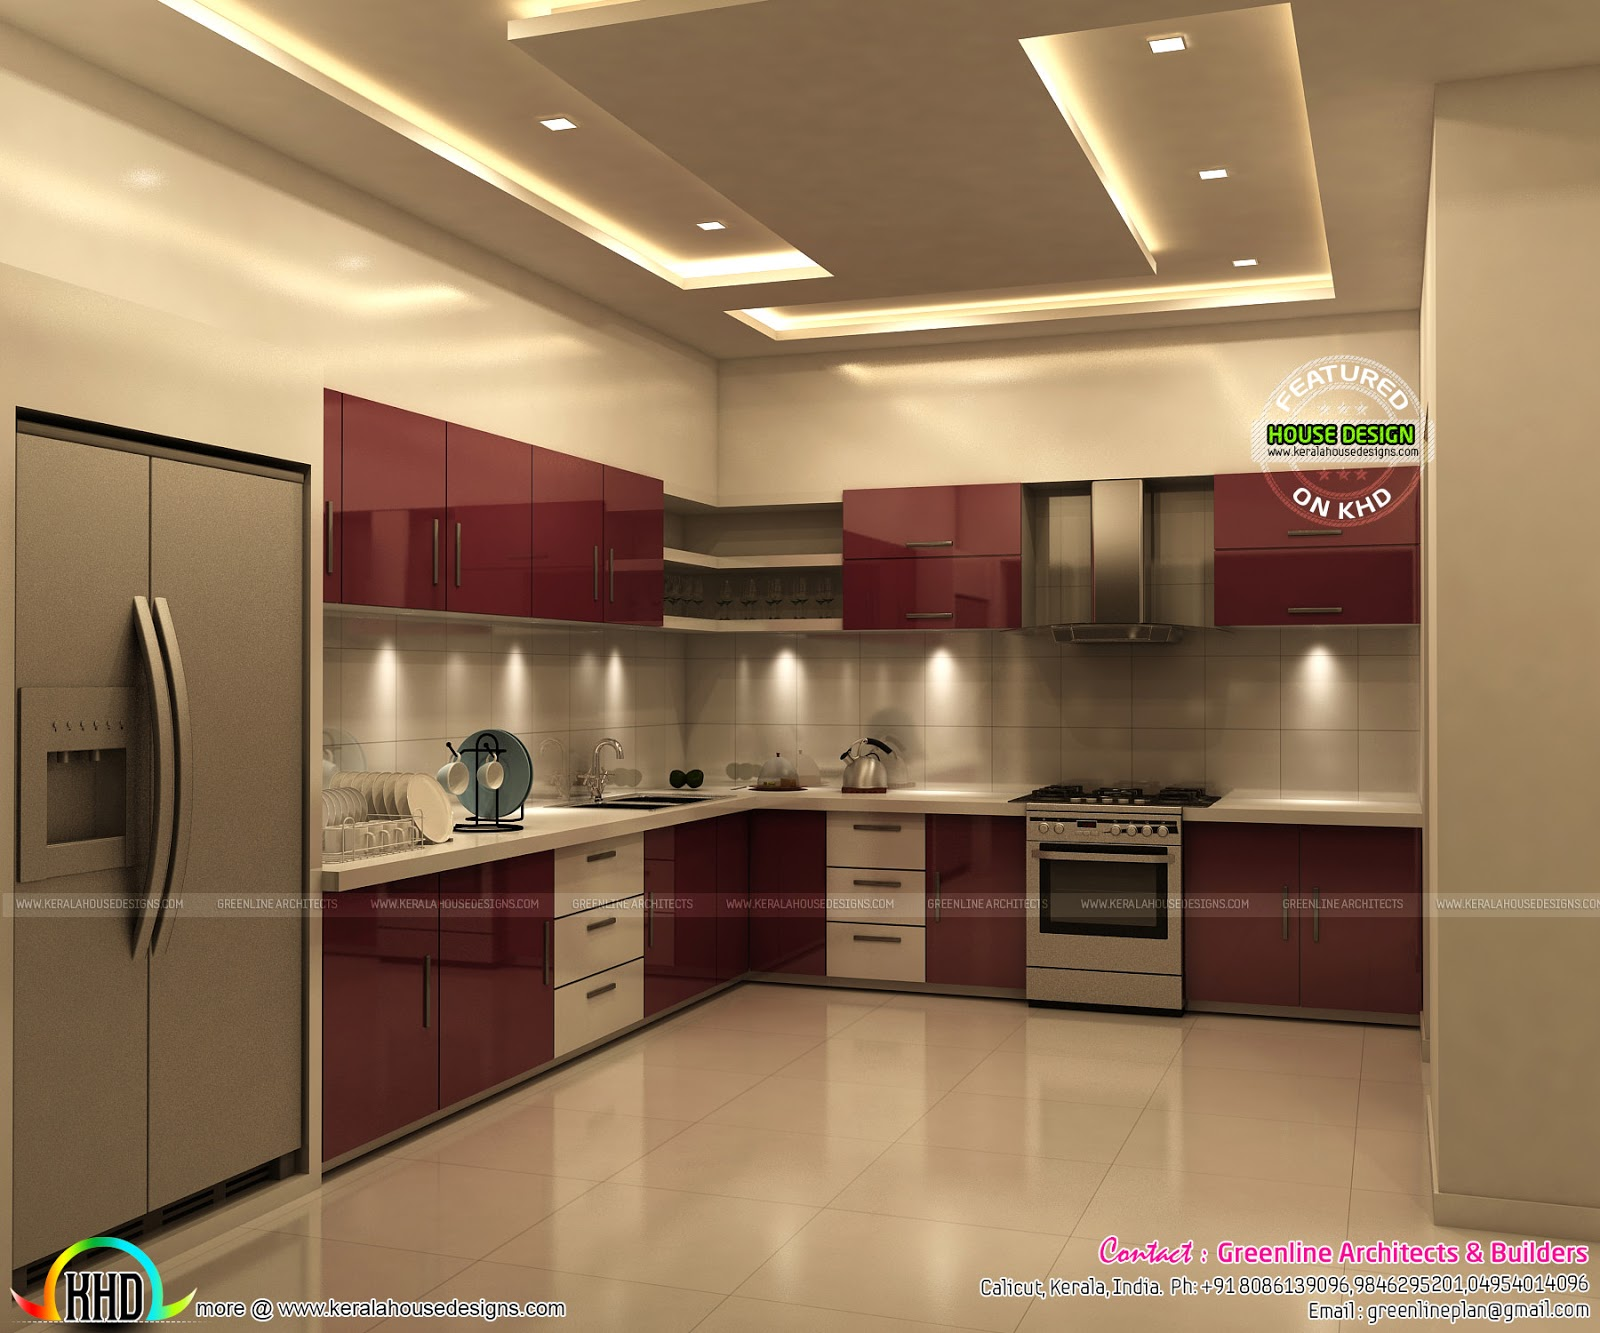 Superb kitchen and bedroom interiors kerala home design for As interior design